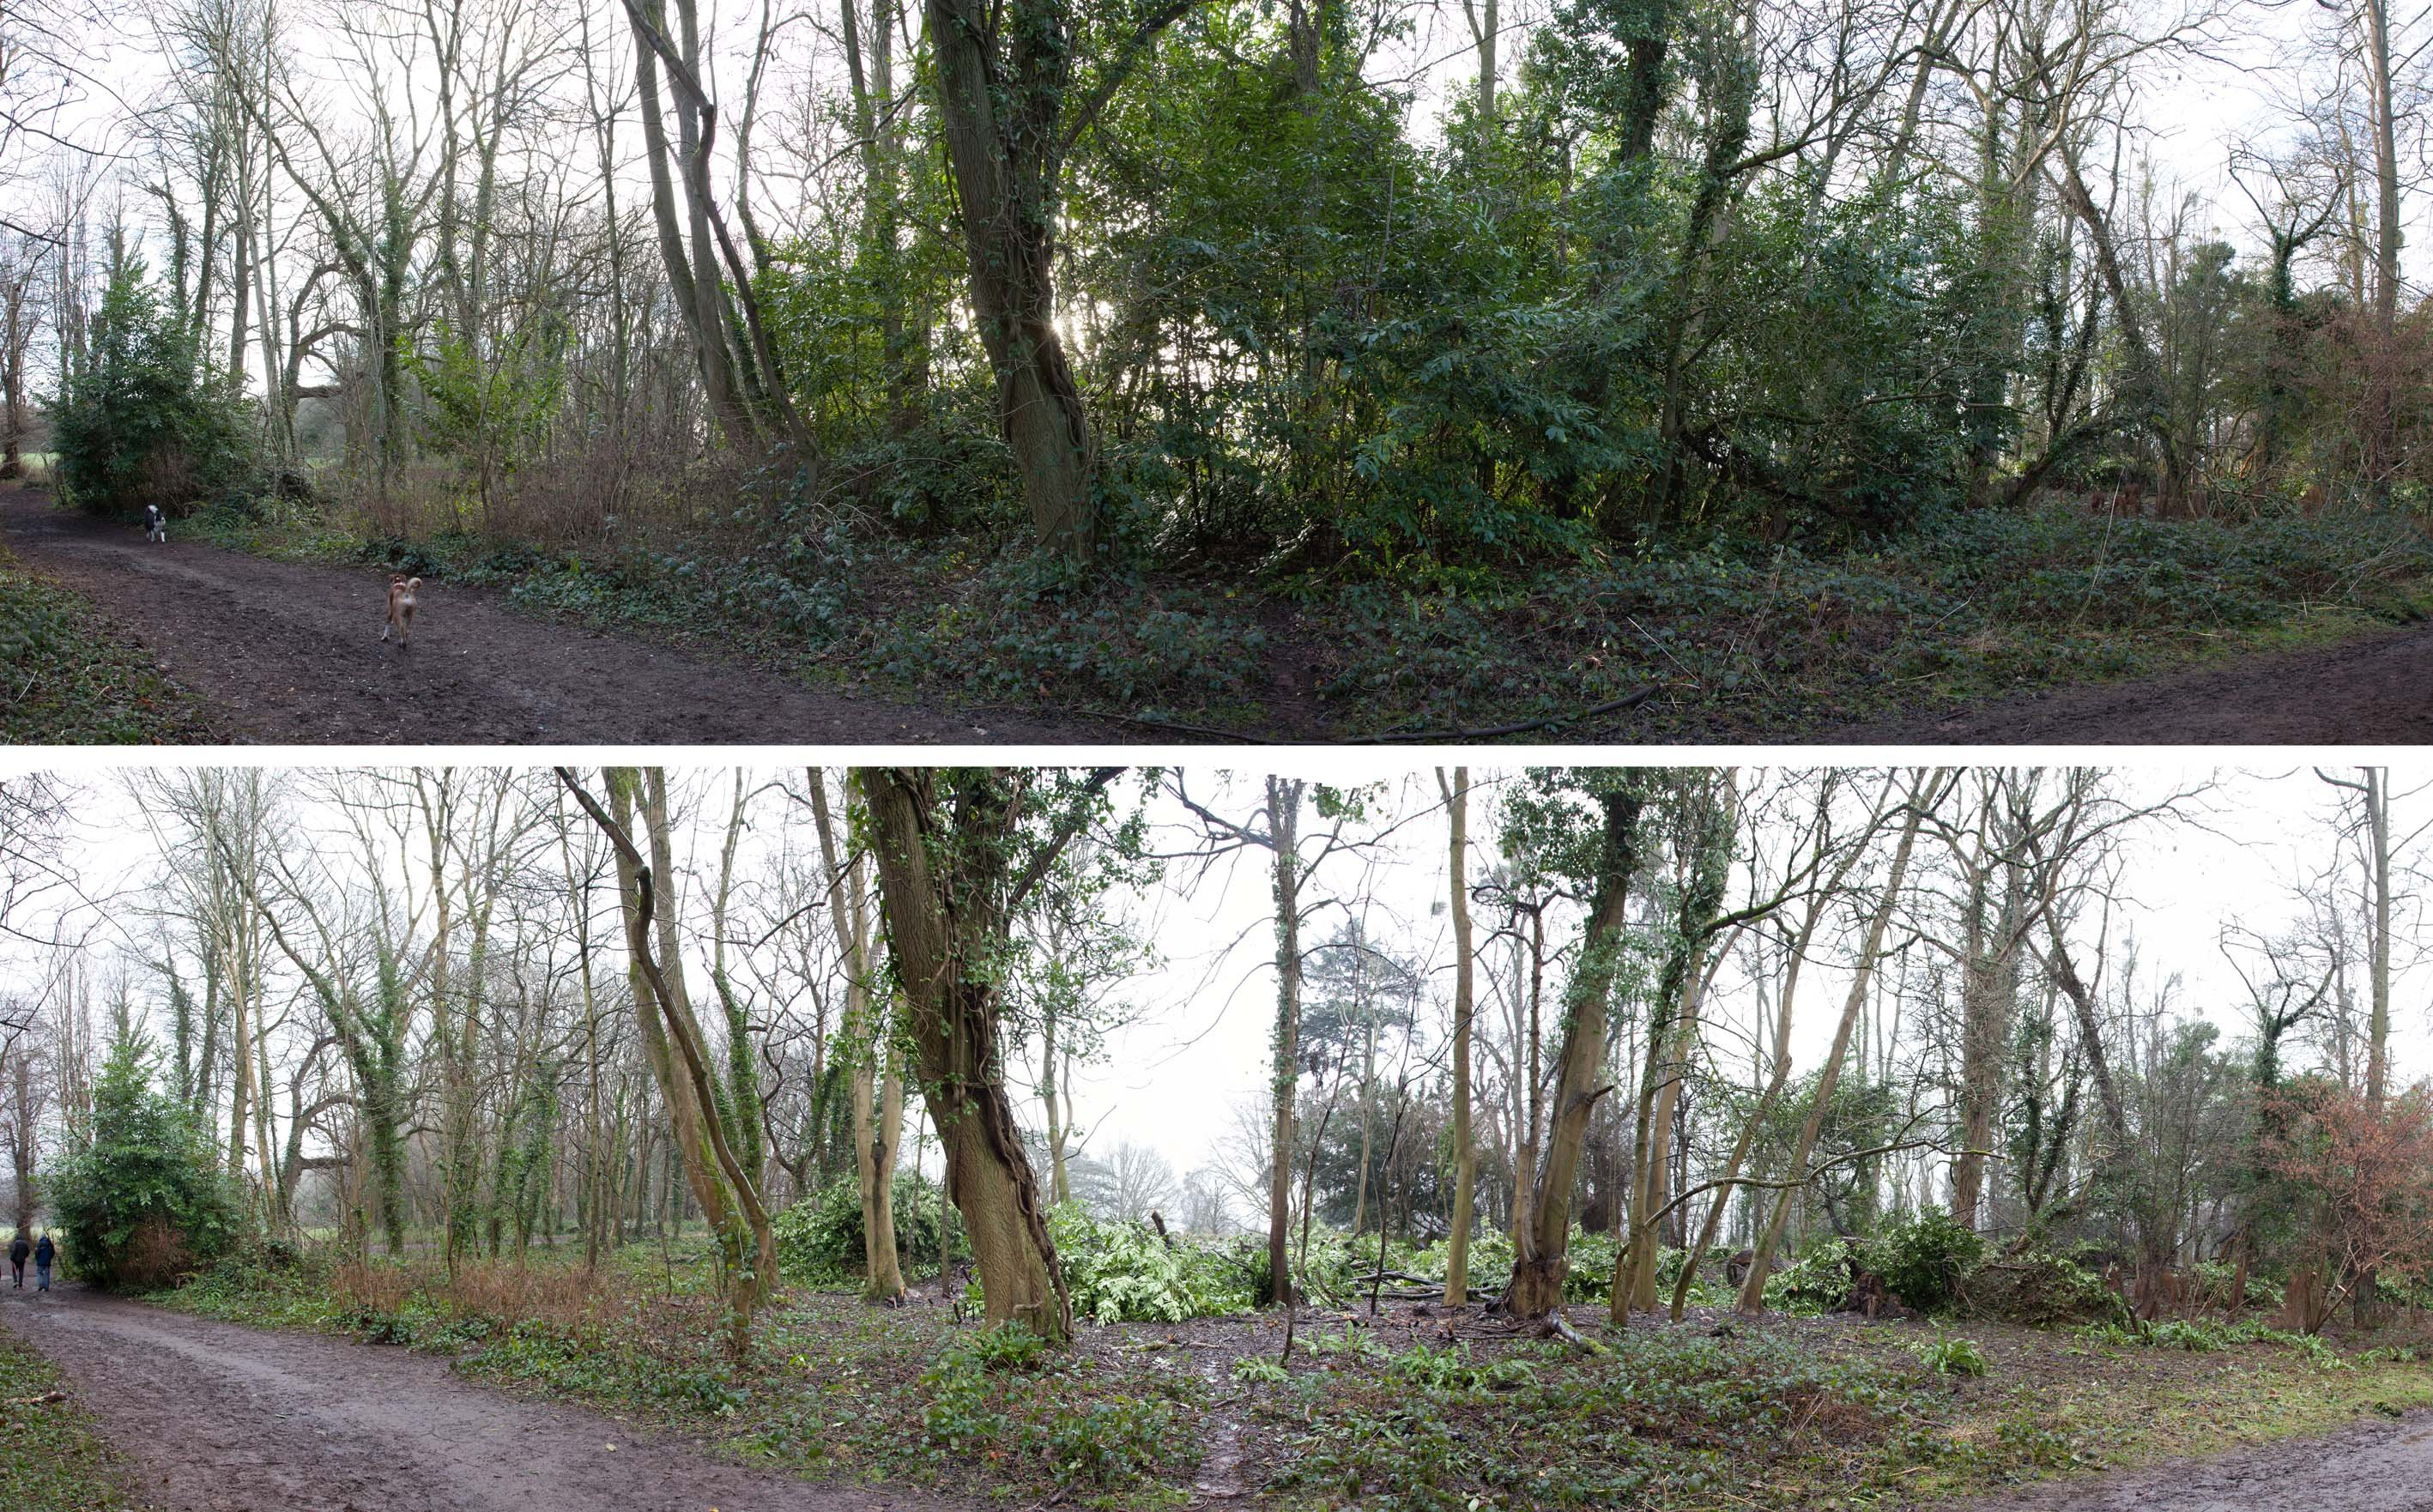 Looking south from the main path through the woods towards the Circle before and after work